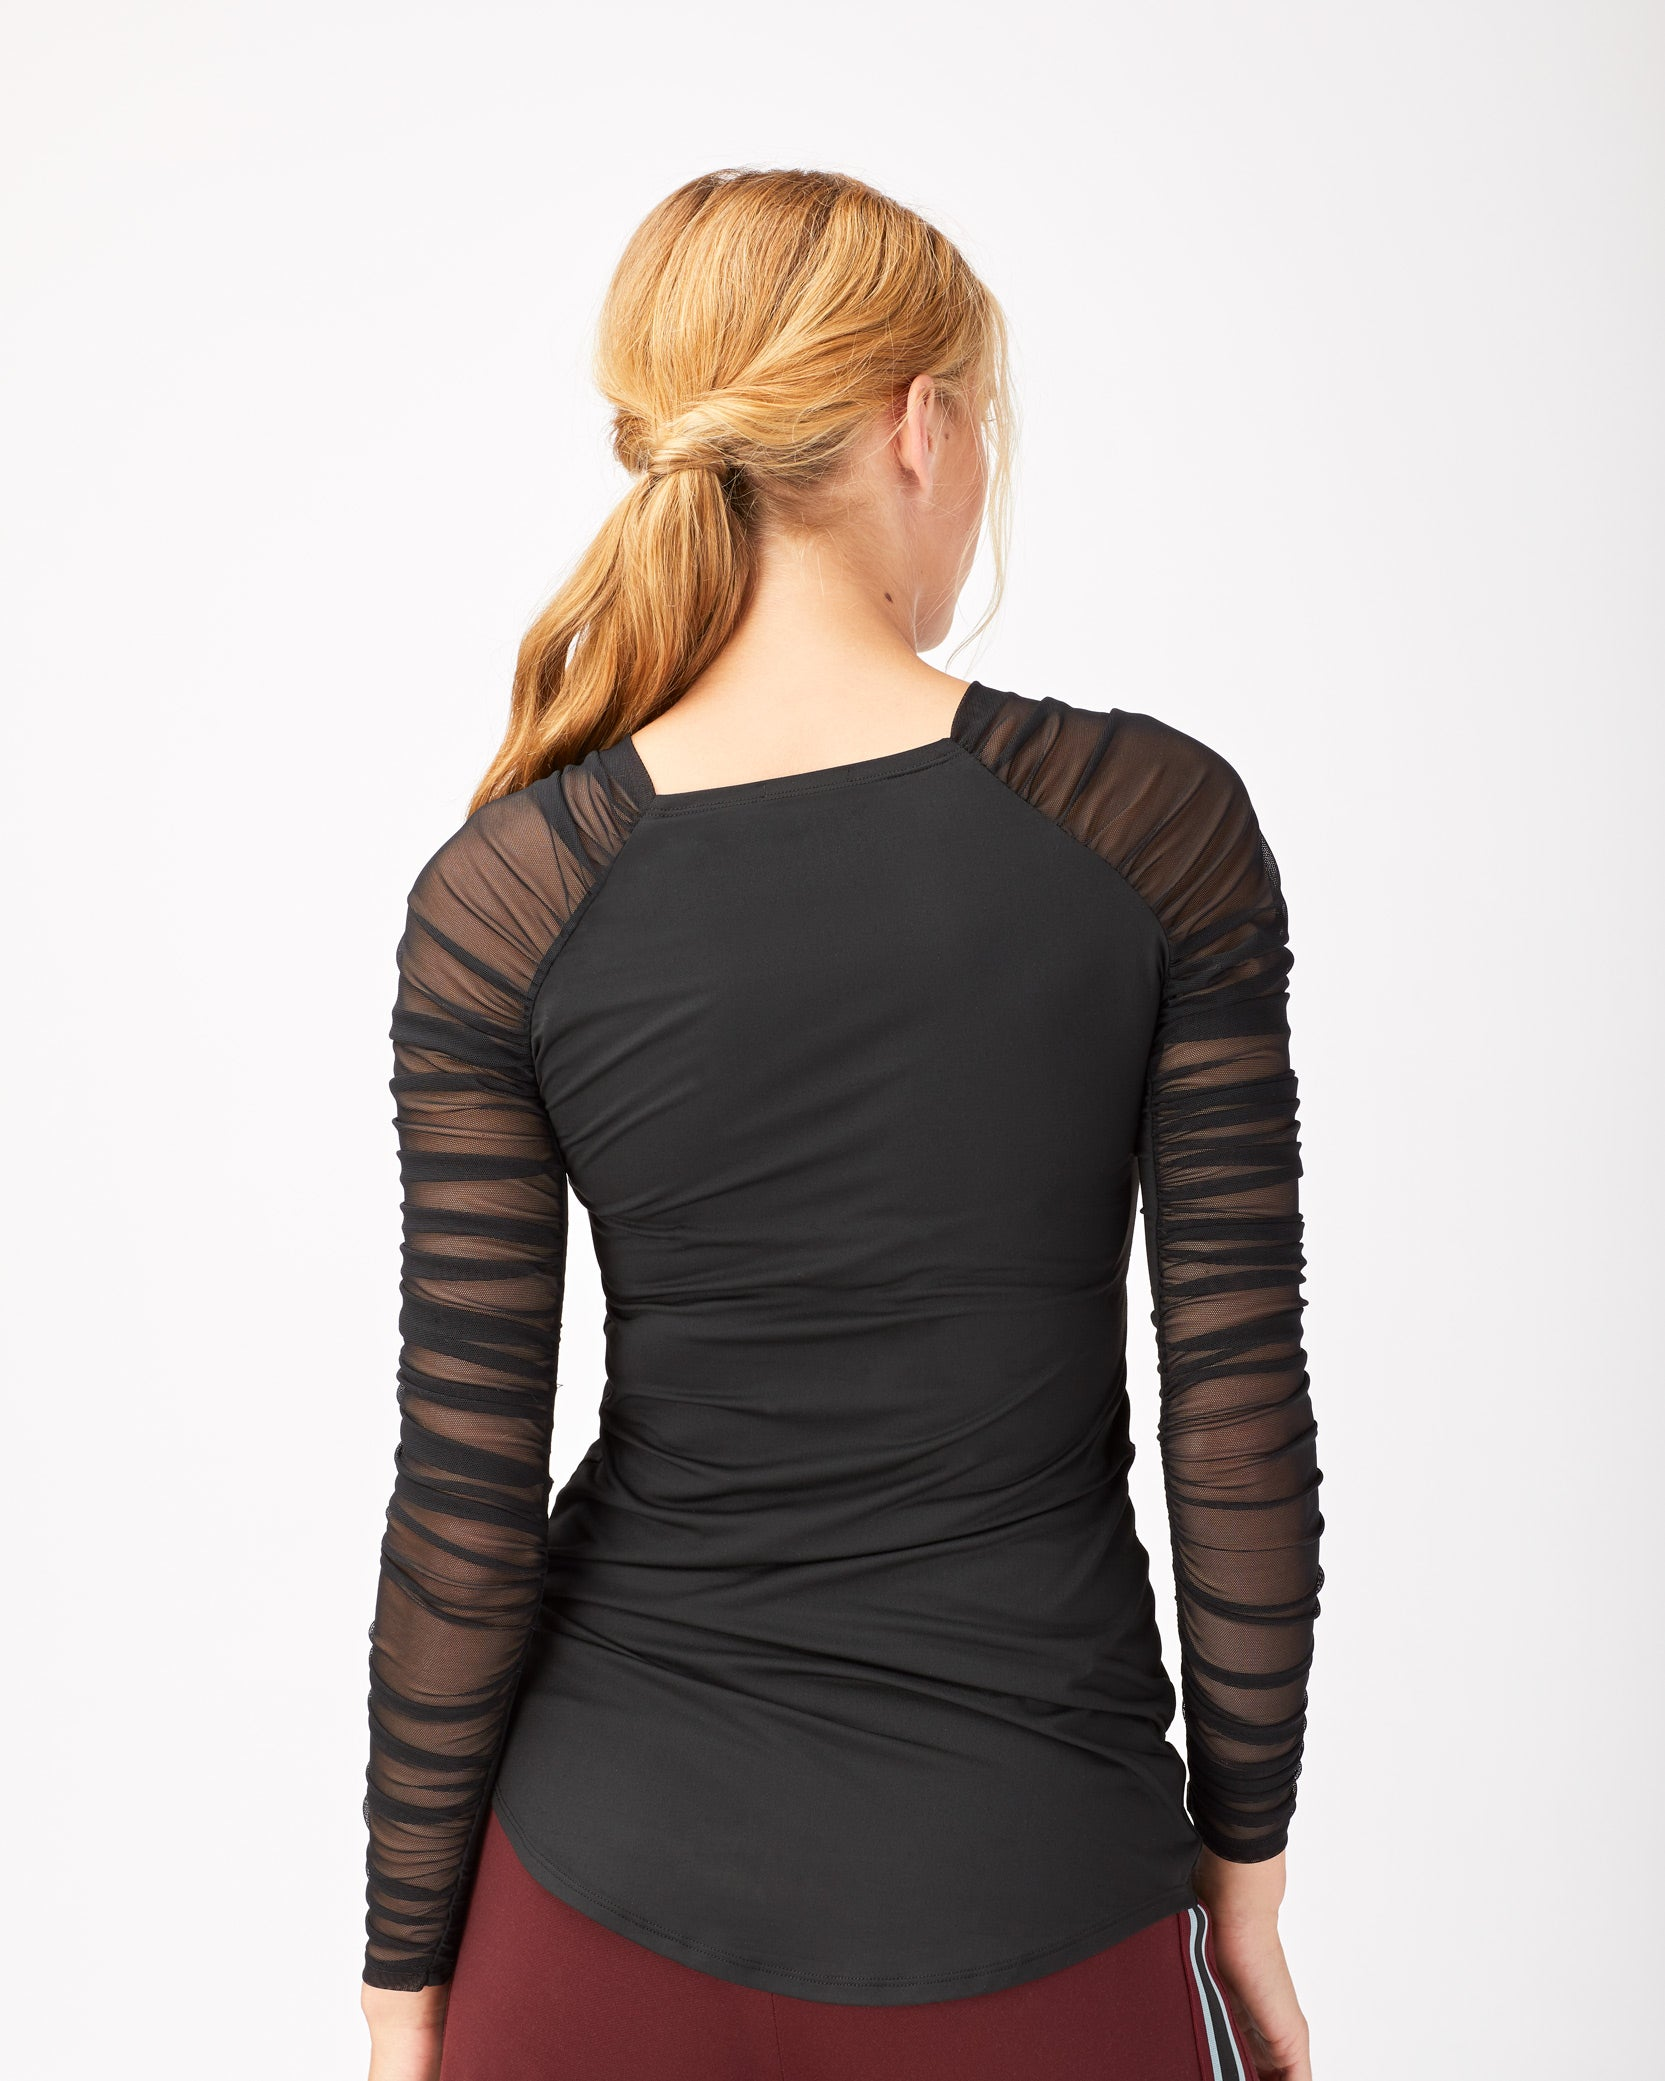 ripple-top-black